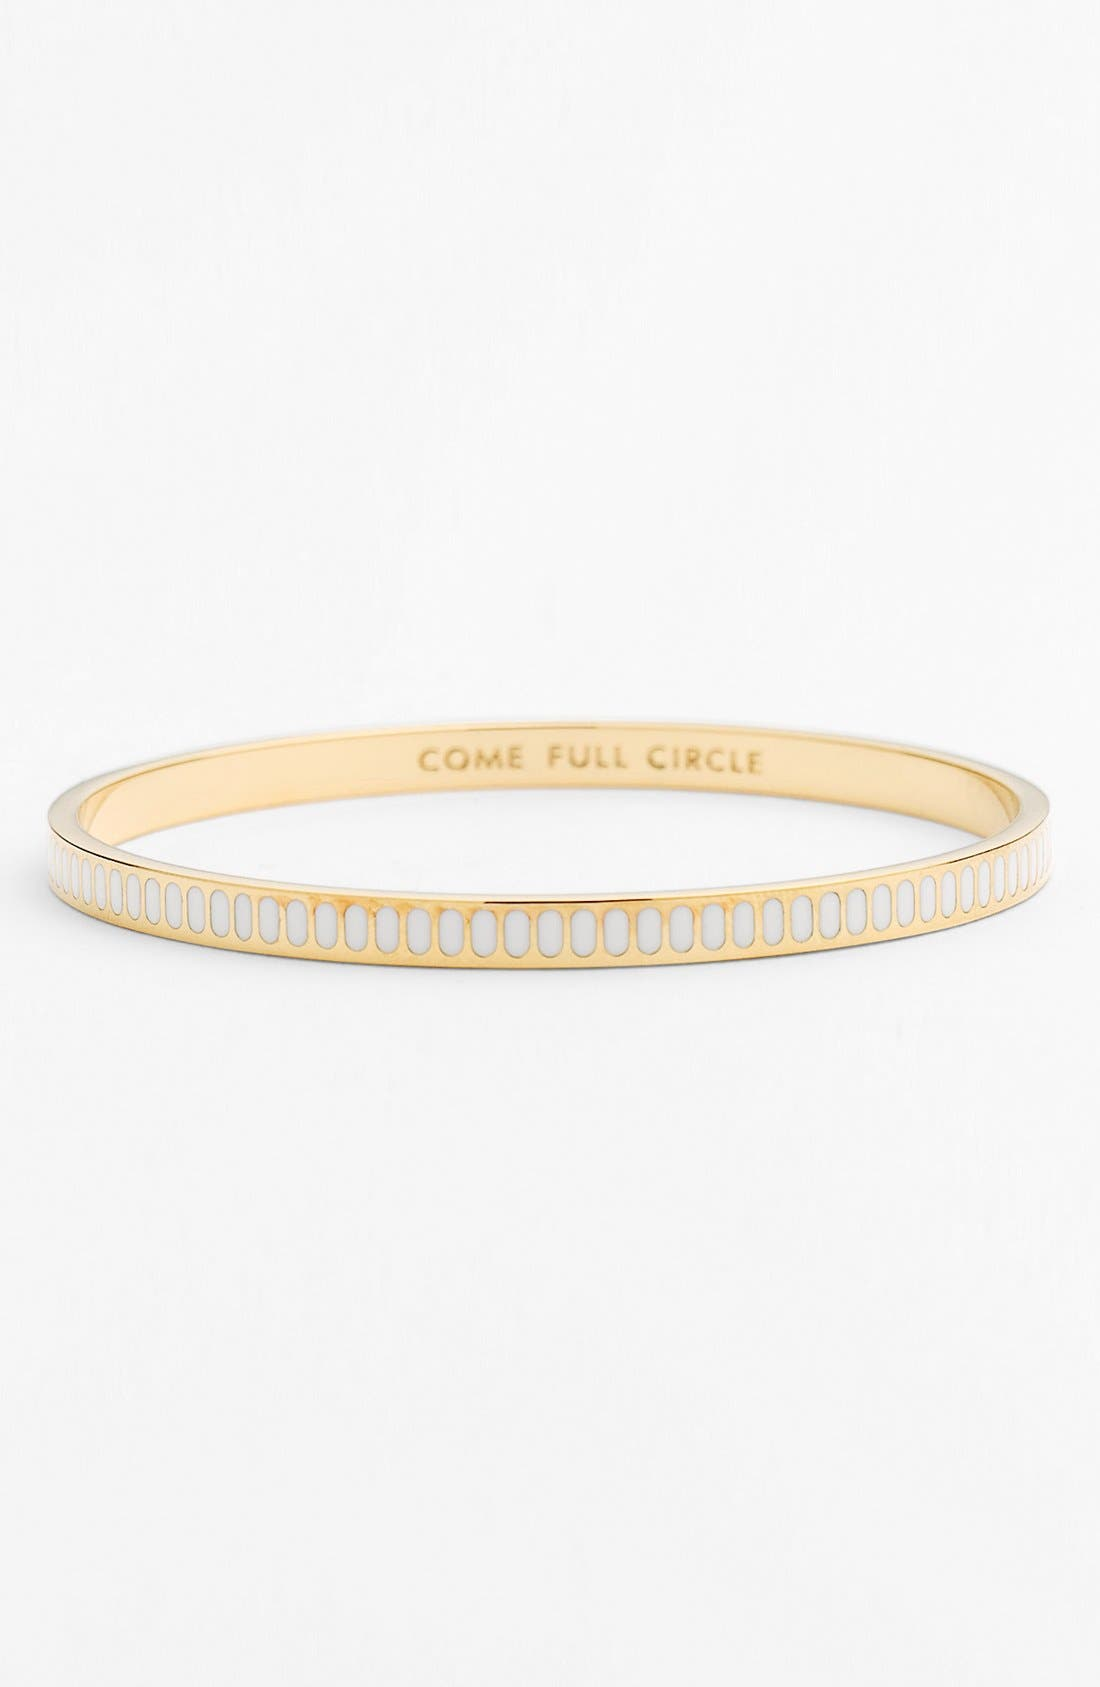 Alternate Image 1 Selected - kate spade new york 'idiom - come full circle' bangle